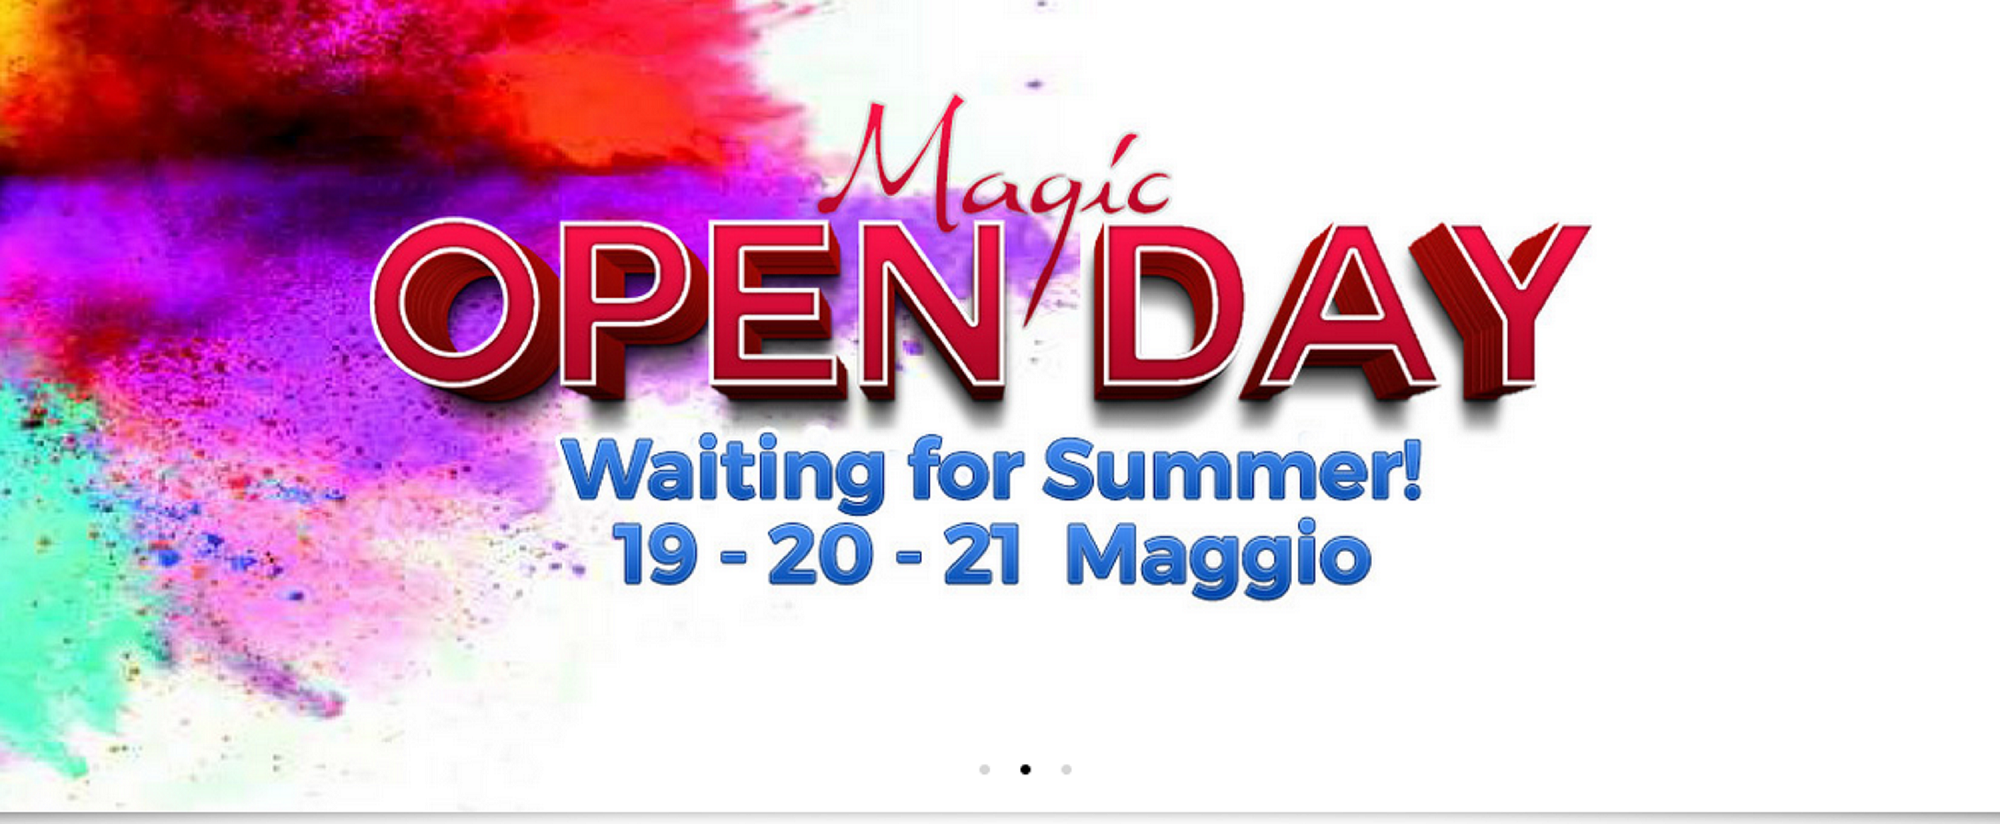 "SAVE THE DATE: OPEN DAY ""WAITING FOR SUMMER"" BY RISTOPIU' LOMBARDIA"